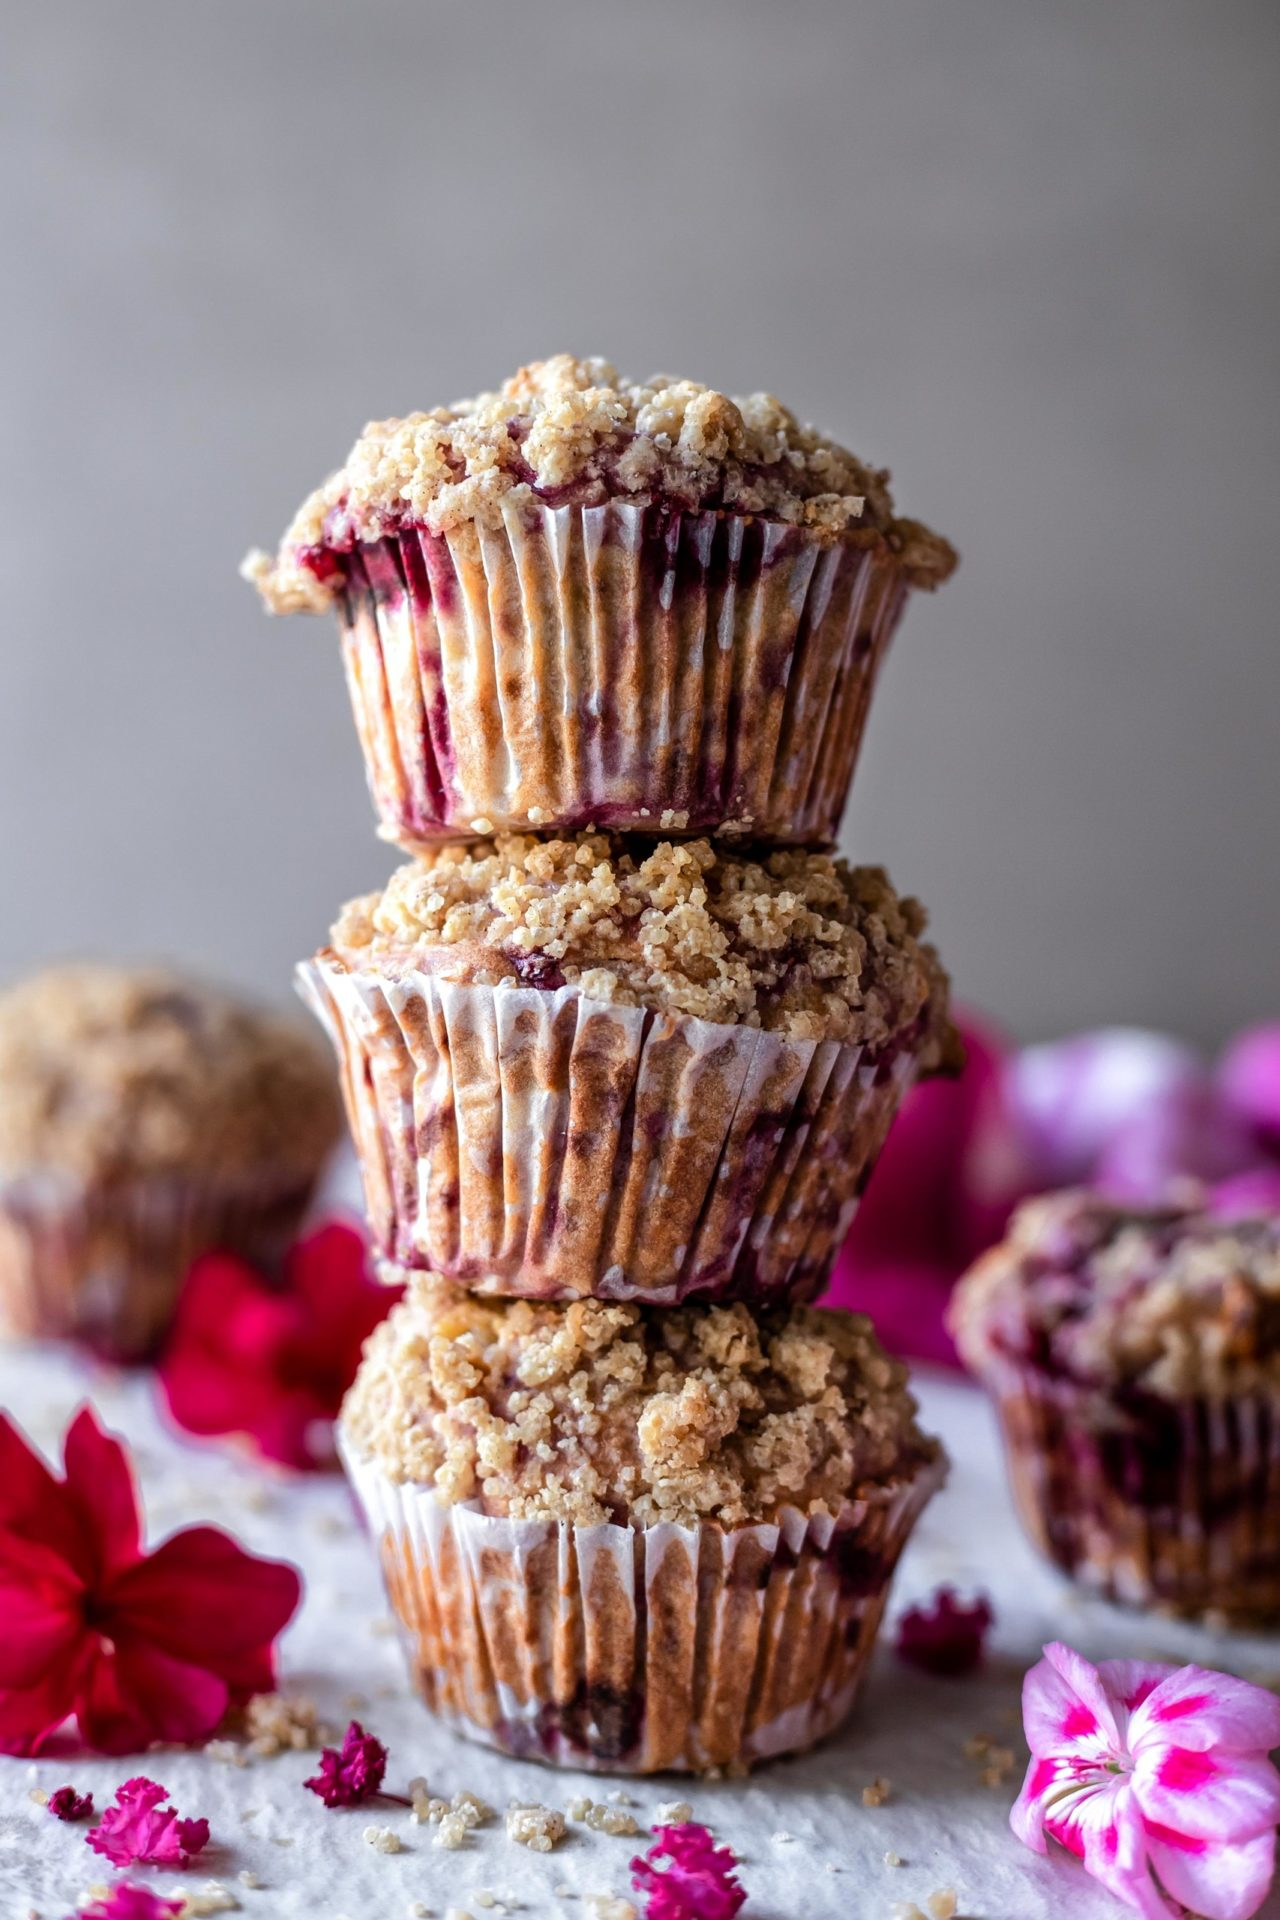 These Gluten-Free Raspberry White Chocolate Streusel Muffins are perfectly sweetened, crumbly on the top, flavorful, packed with raspberry flavor, hearty and so delicious!